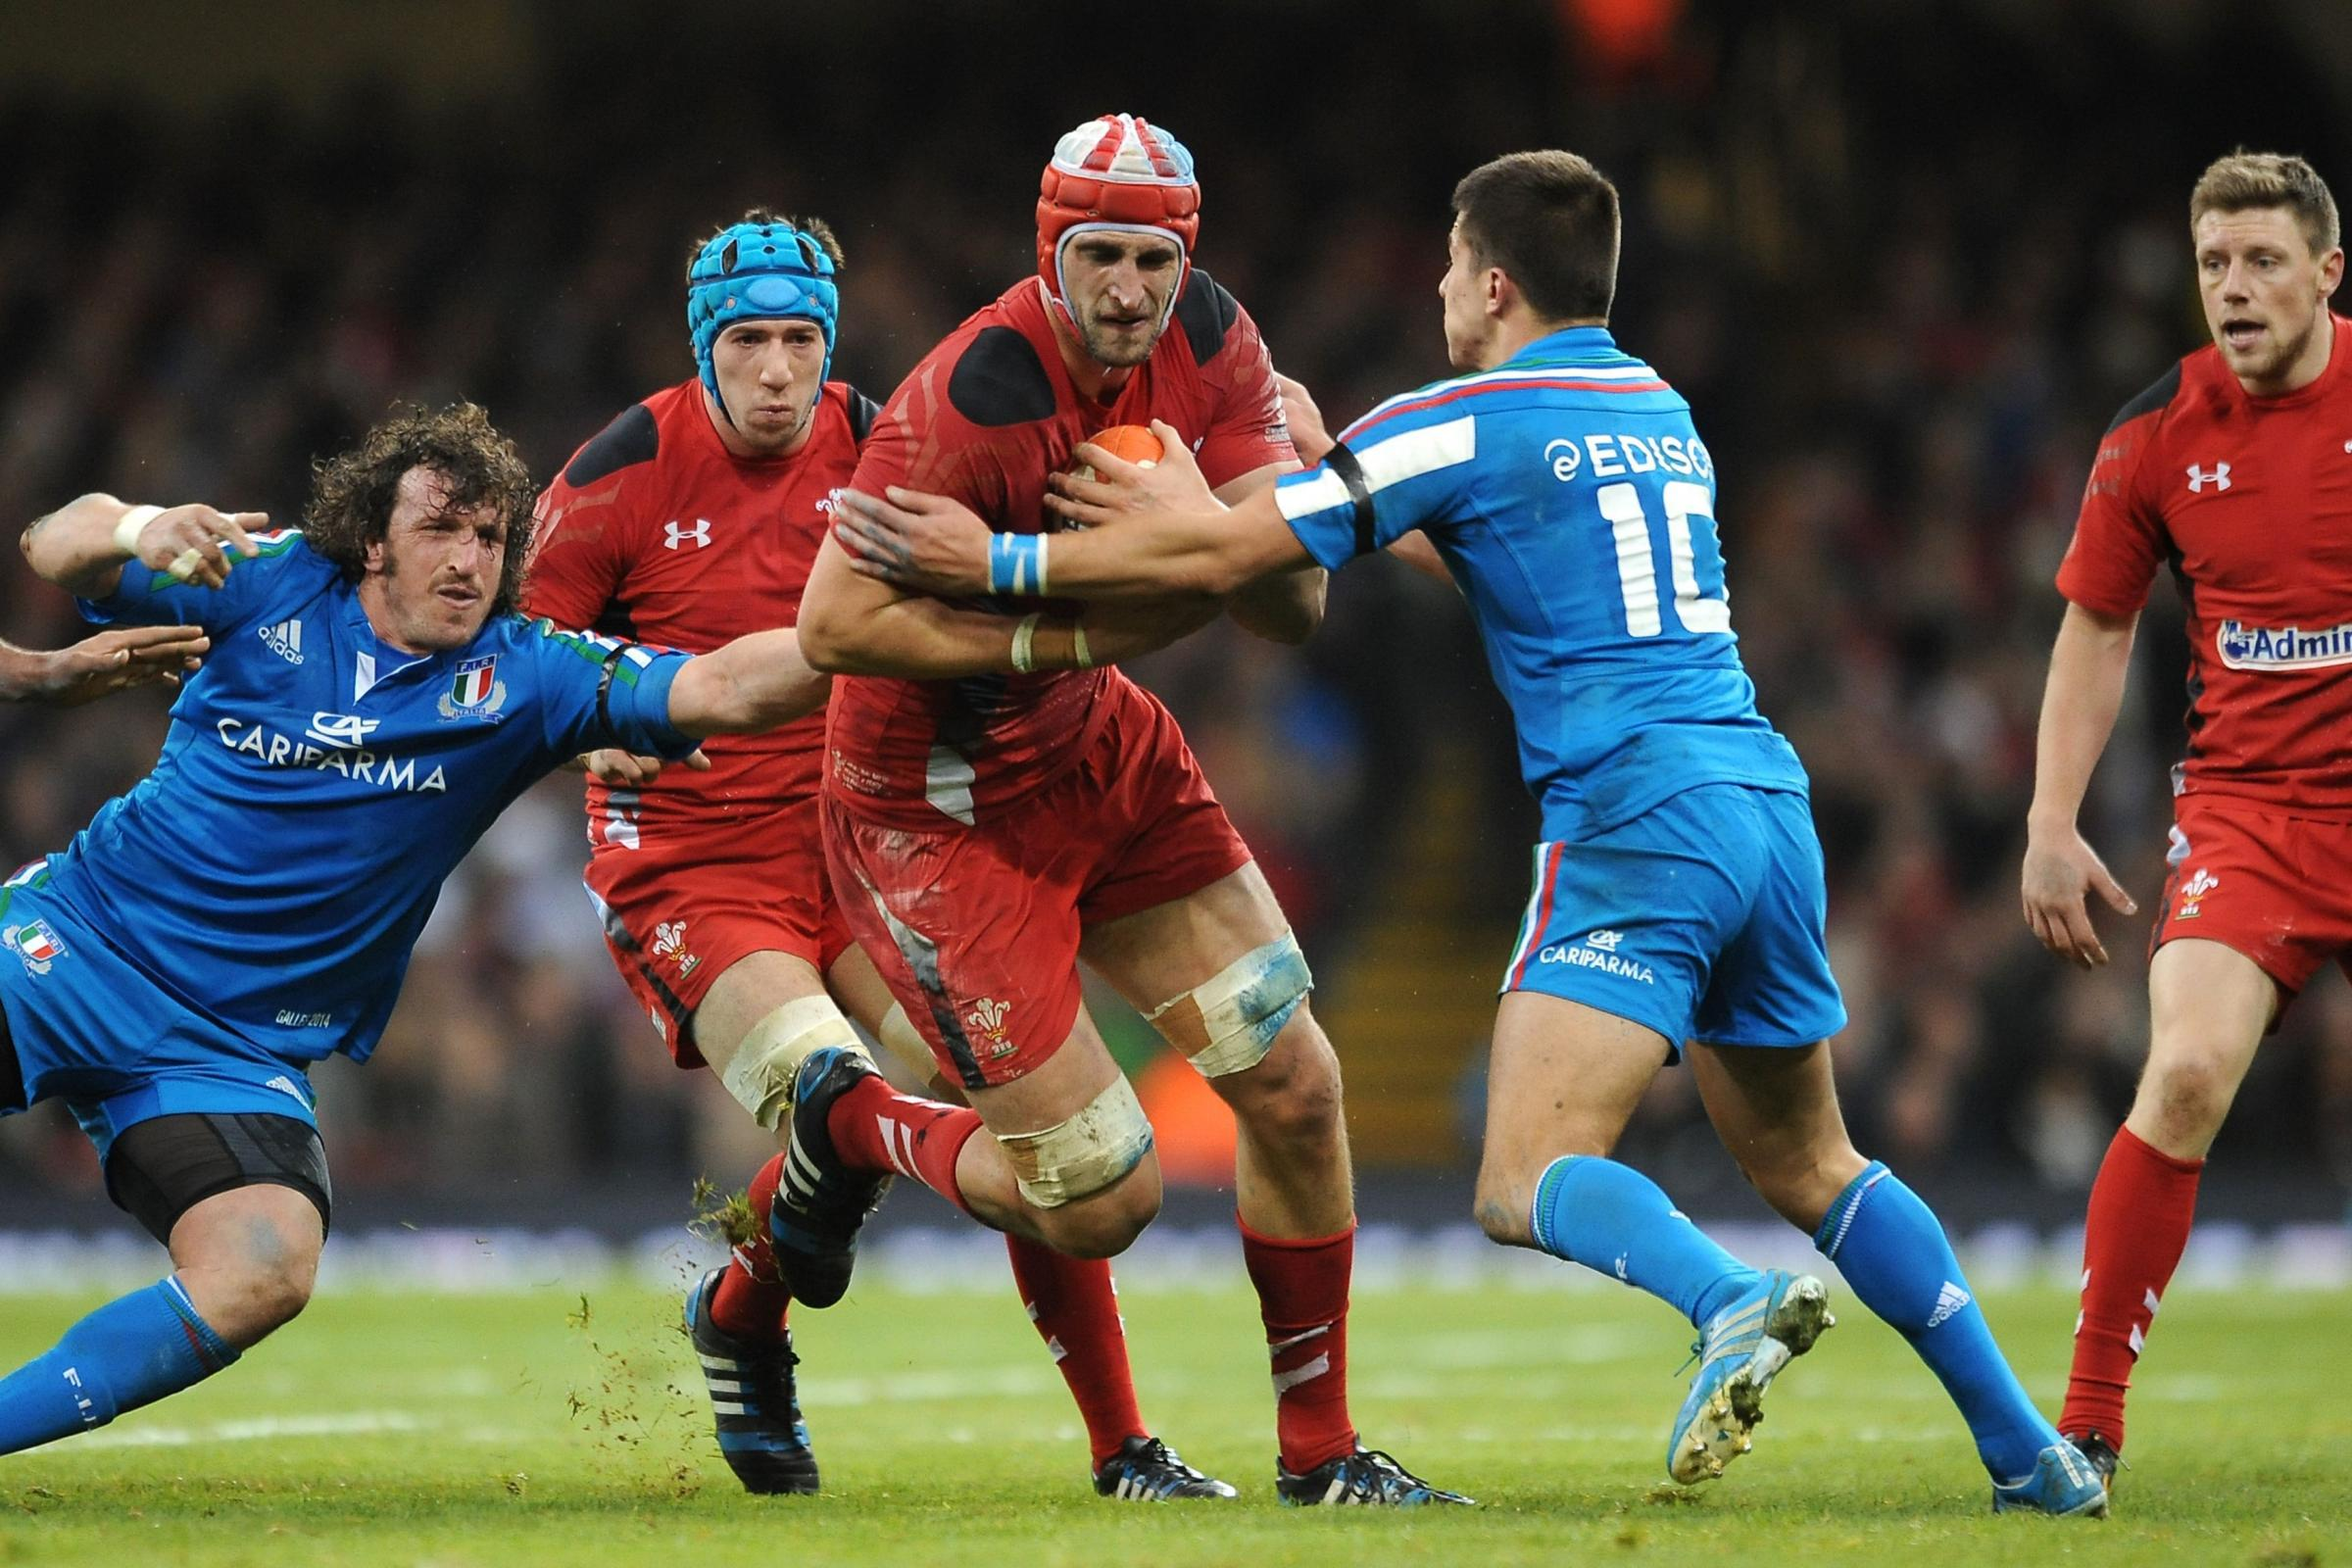 TARGET: Luke Charteris moved to Racing Metro from Perpignan rather than back to Wales